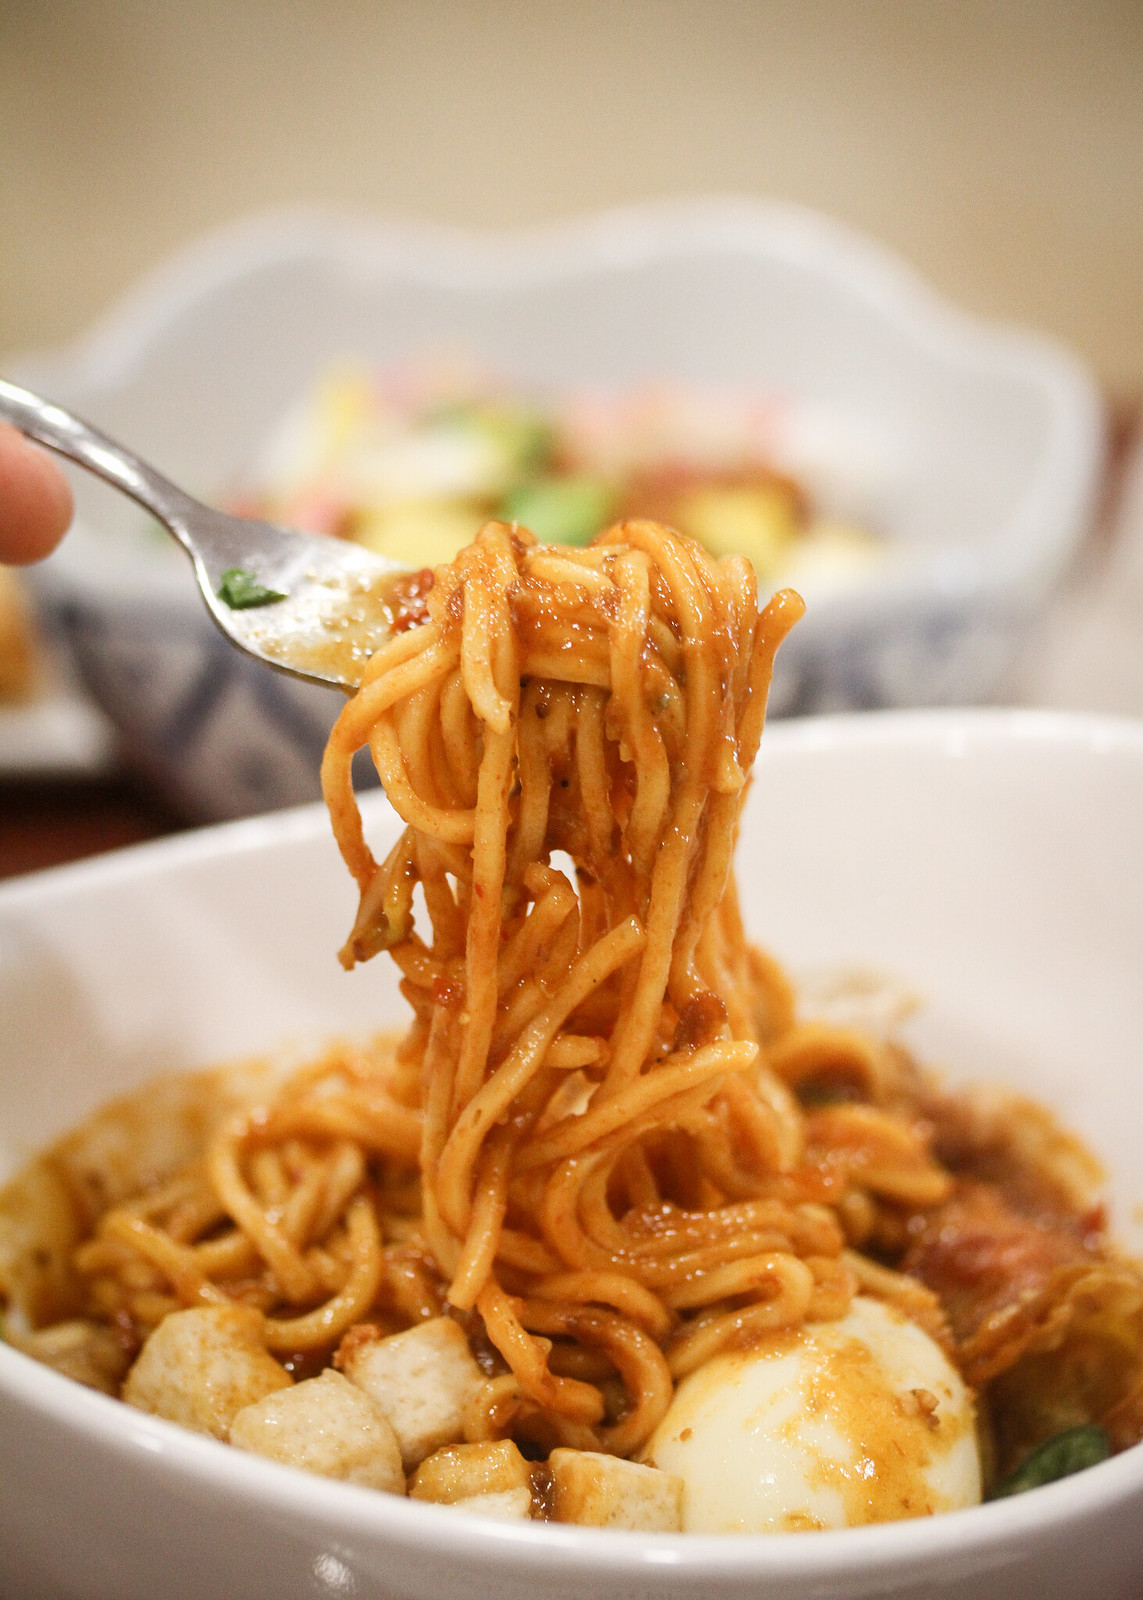 My Makan Place Egg Noodle